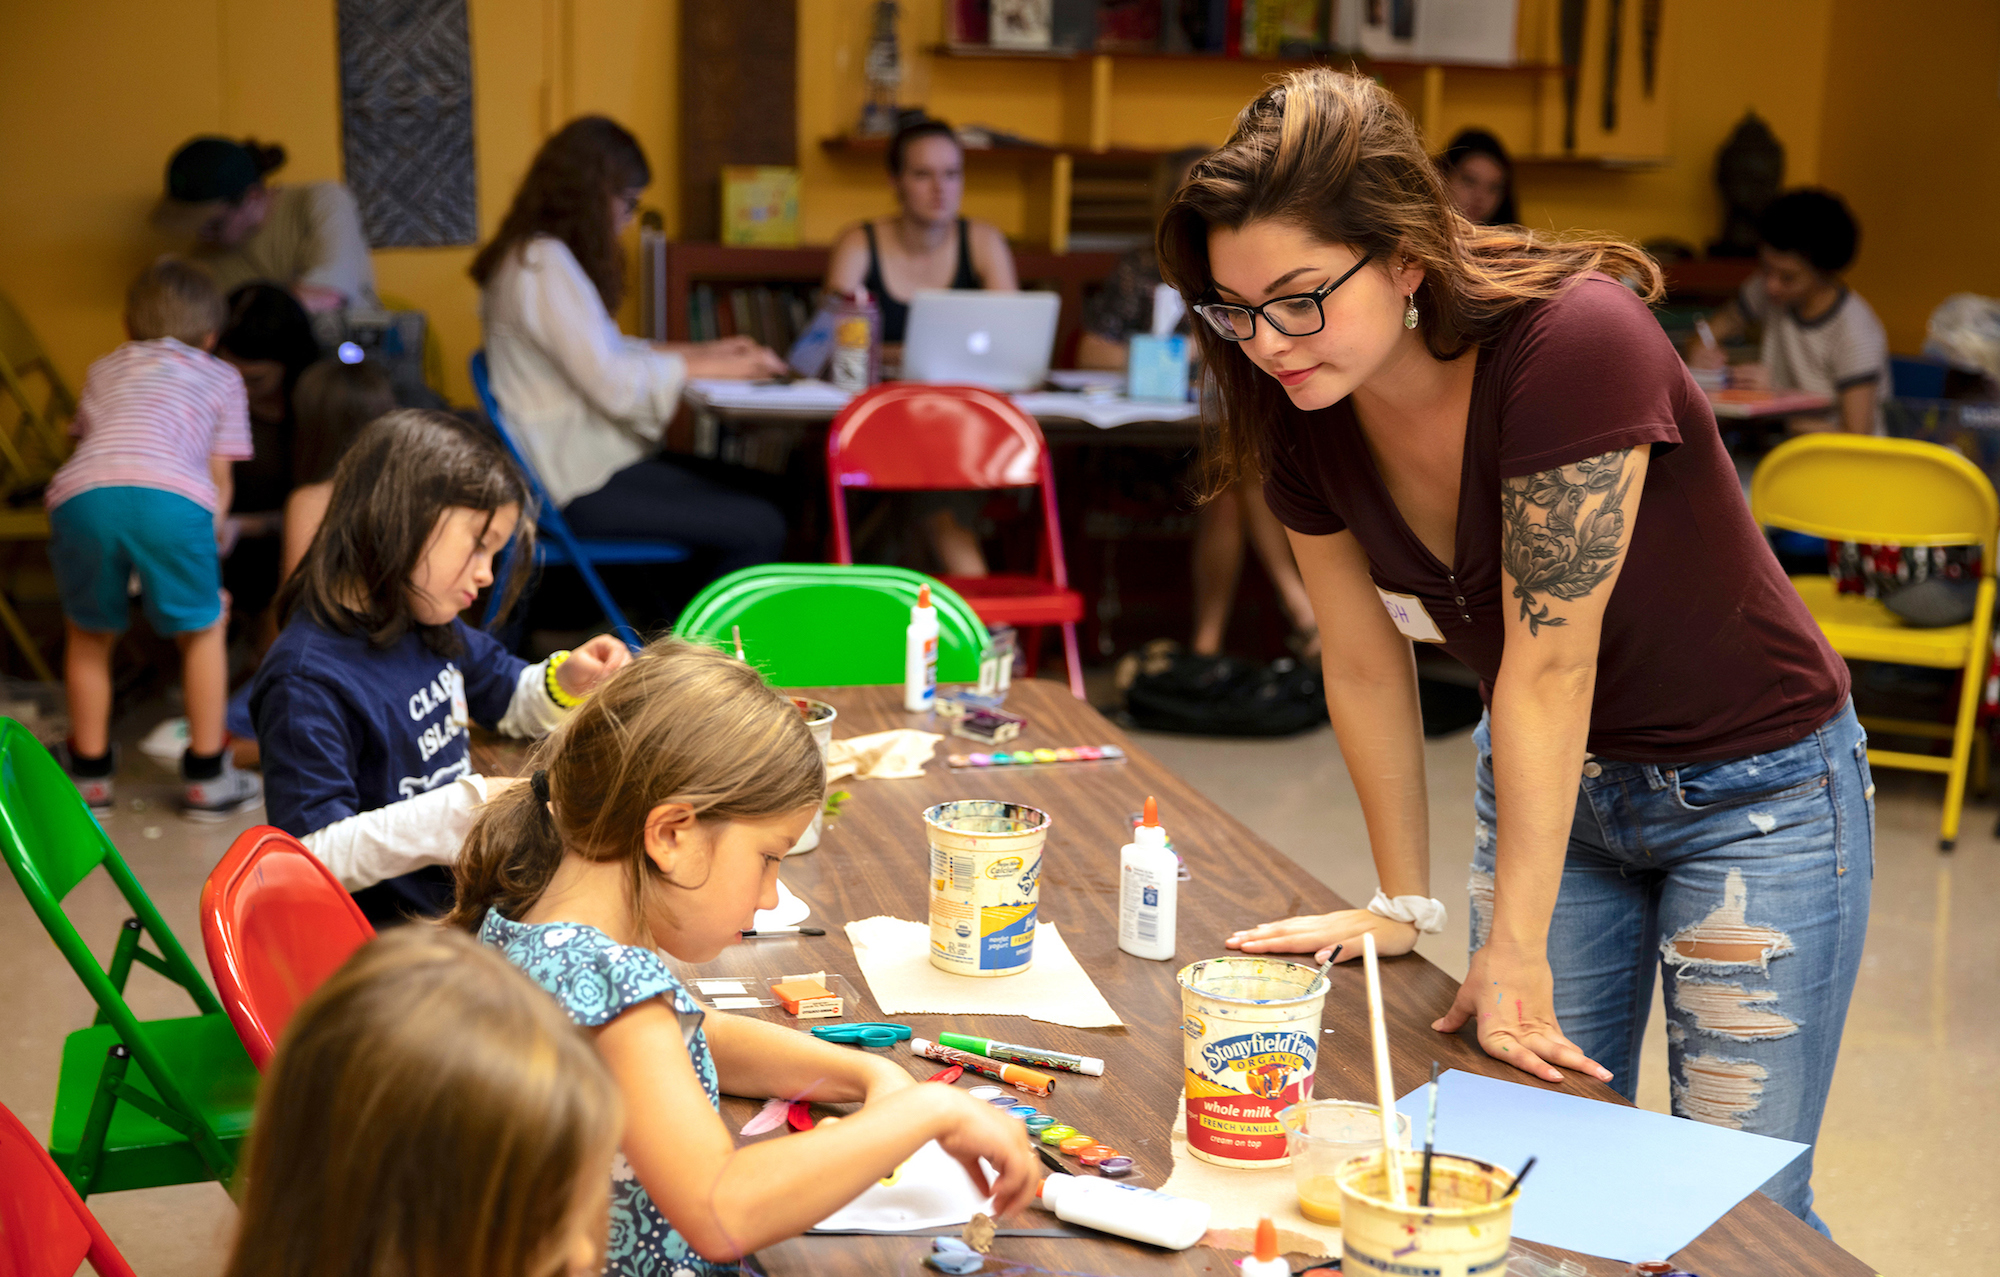 UVM Junior Ashley Bertolino instructs young artists in making masks during Erika White's Art Education class in the Fleming Museum's education workshop.